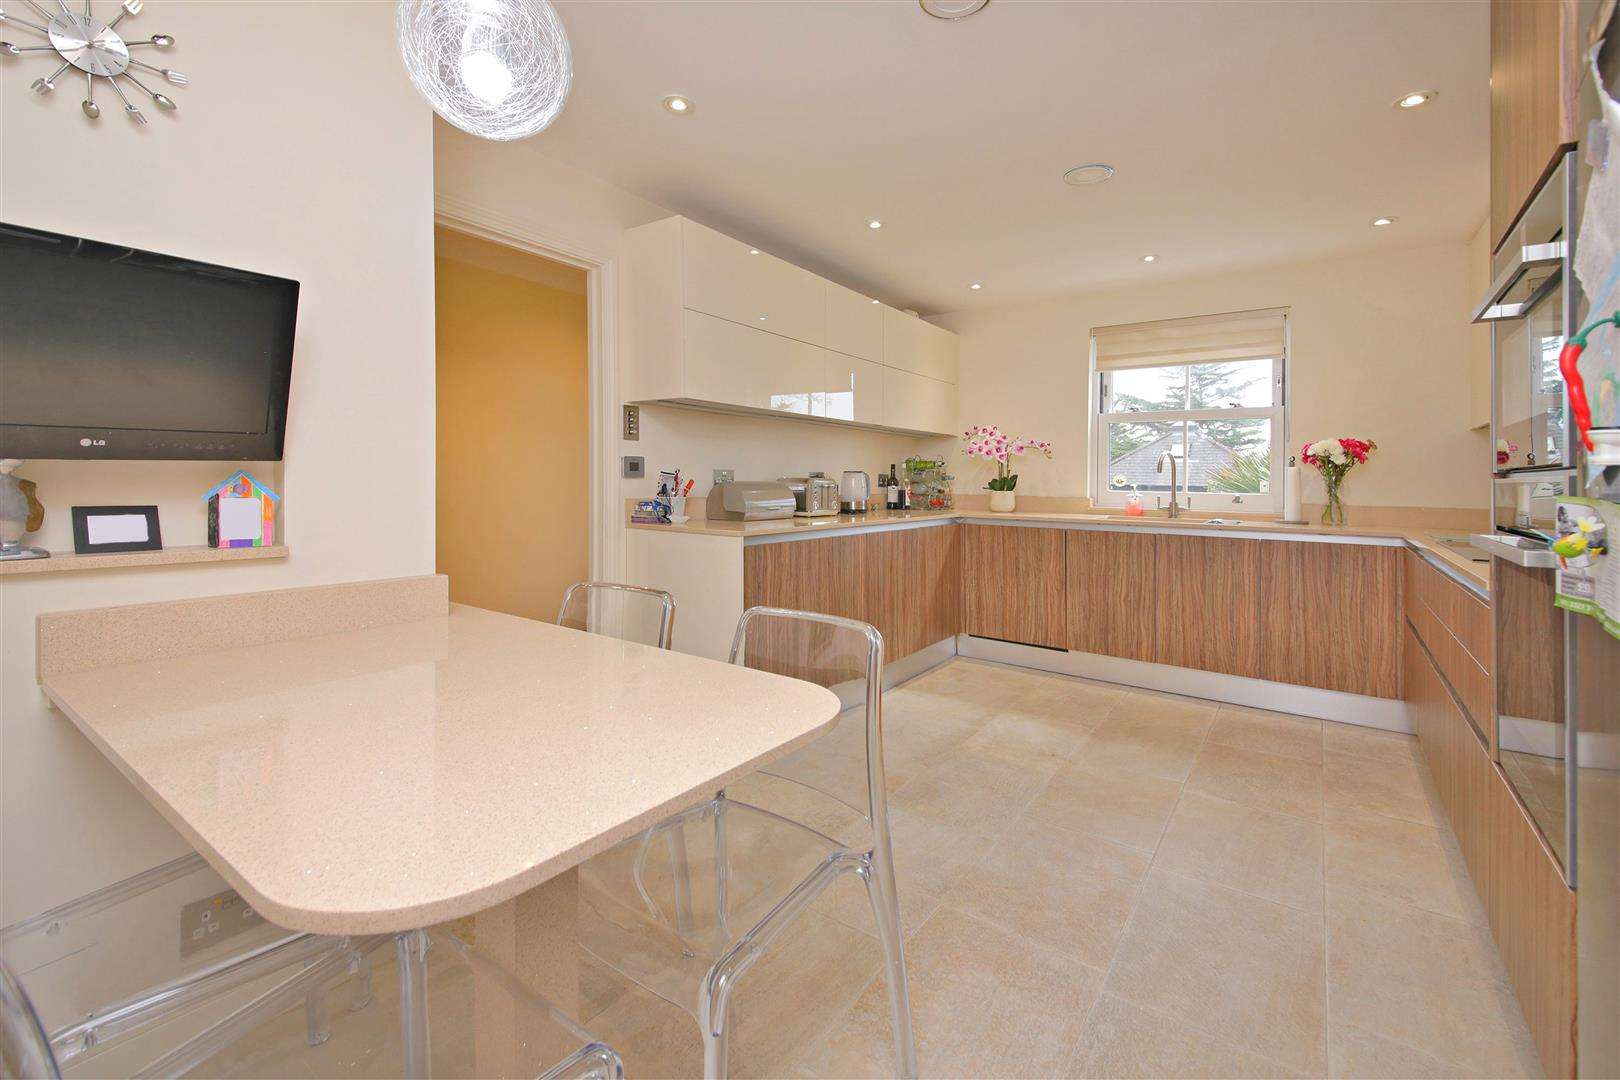 4 bed to rent in Shenley - (Property Image 1)